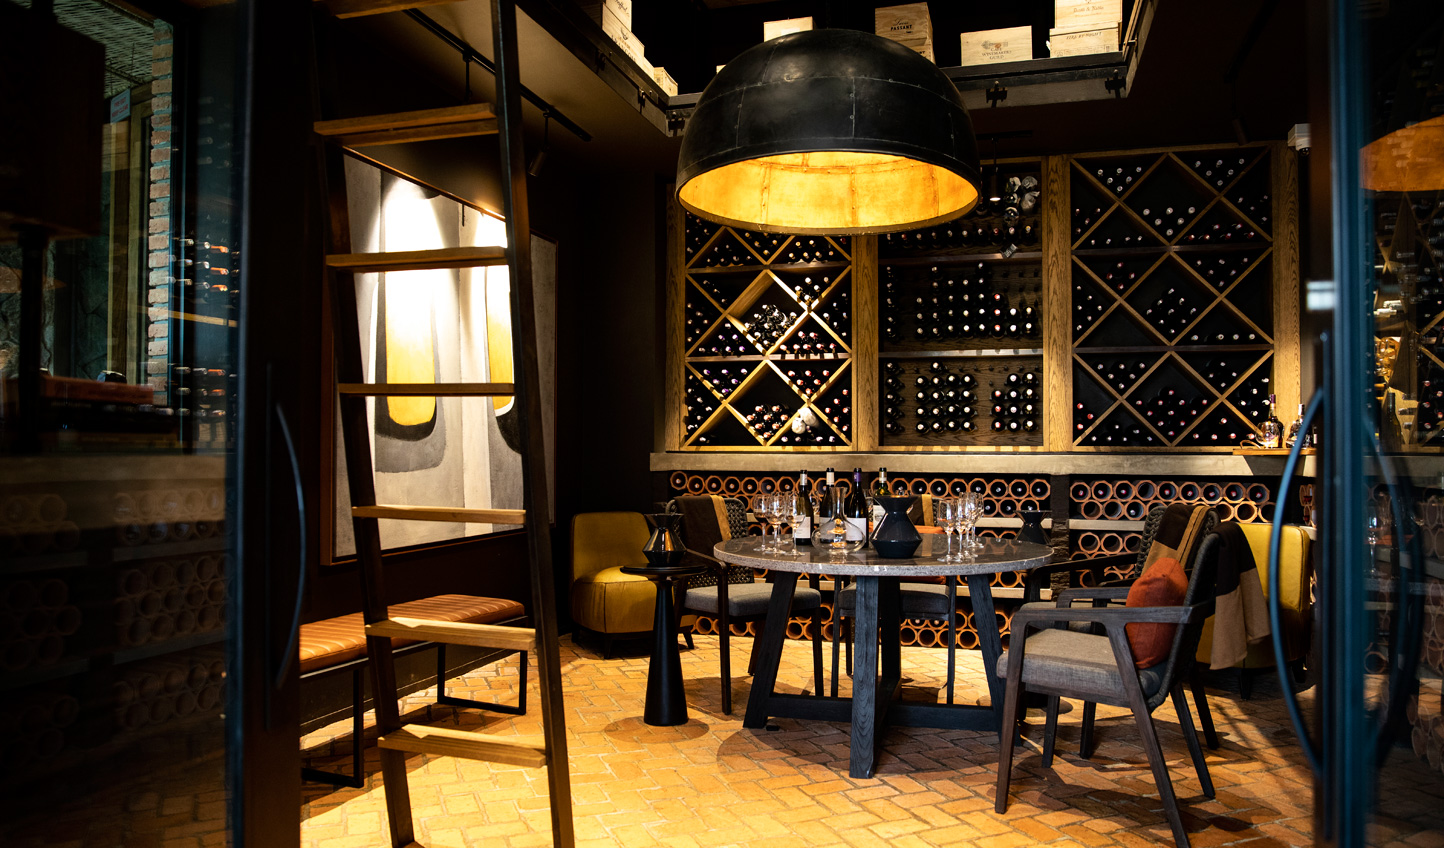 Slip down into the wine cellar and find the perfect complement to the evening